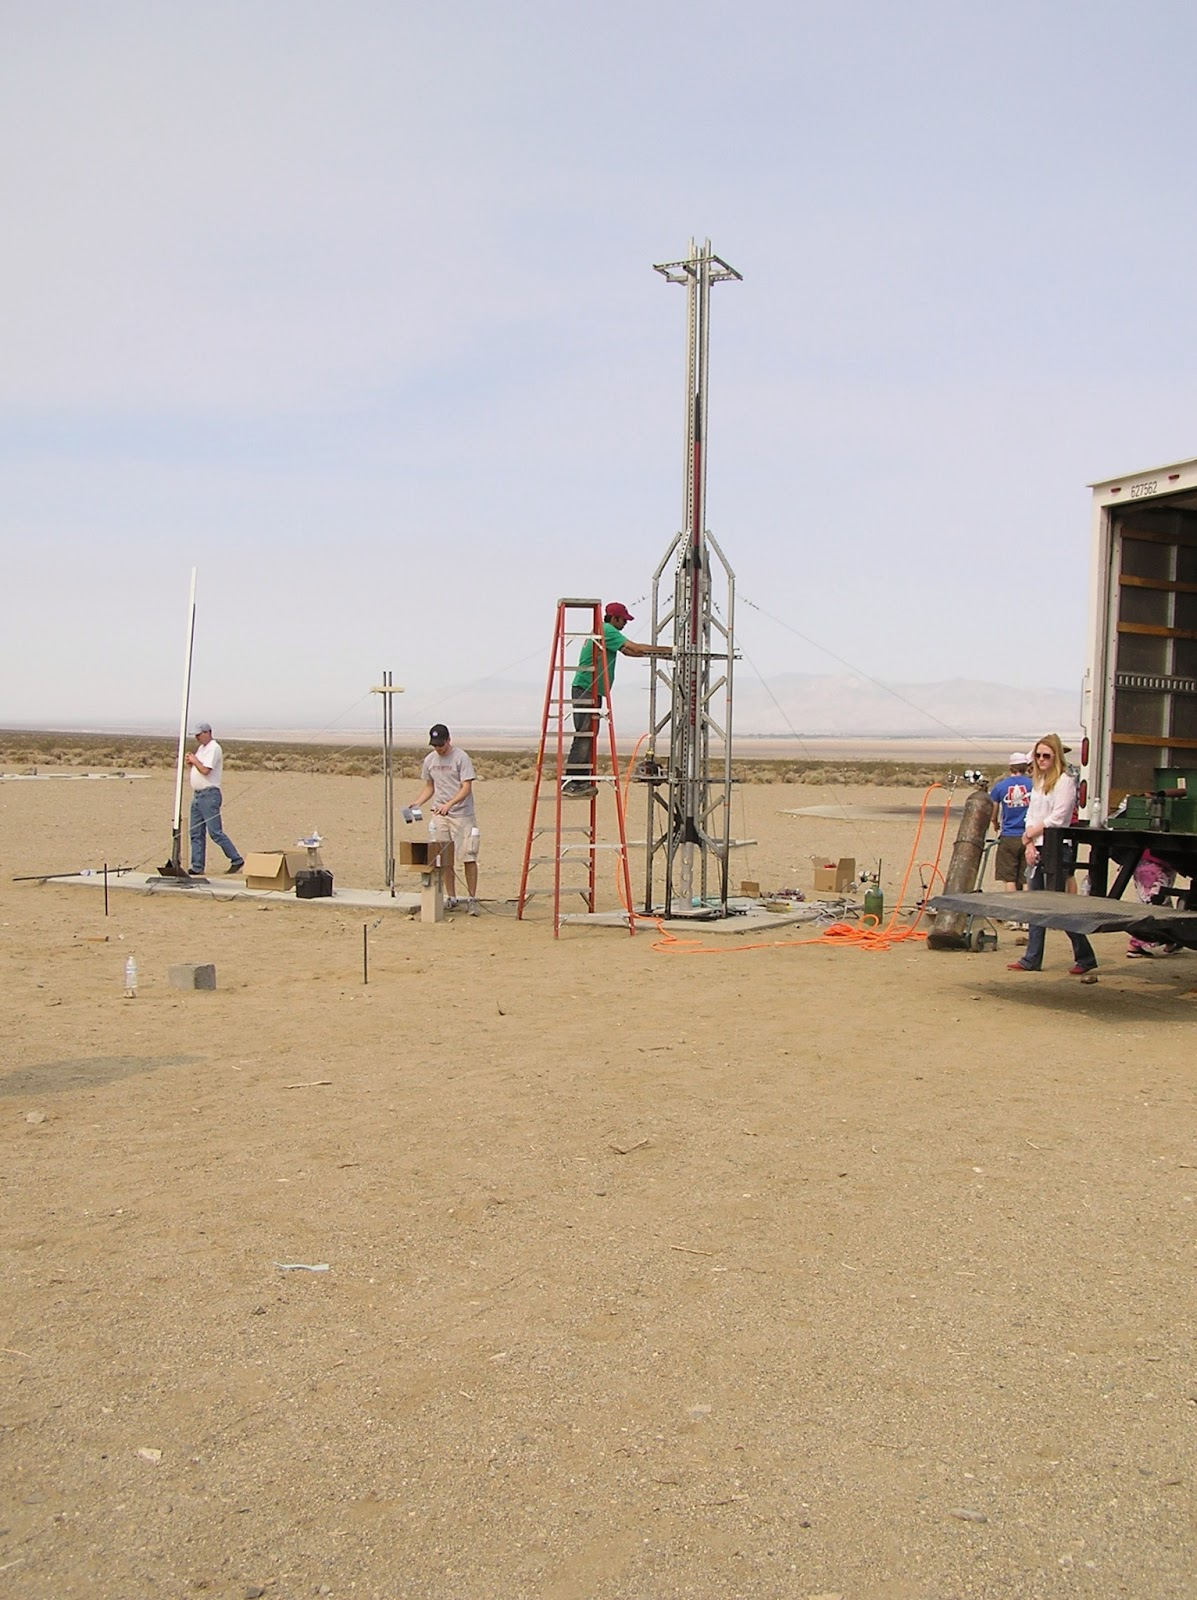 Preparing rocket at FAR - Friend of Amateur Rocketry